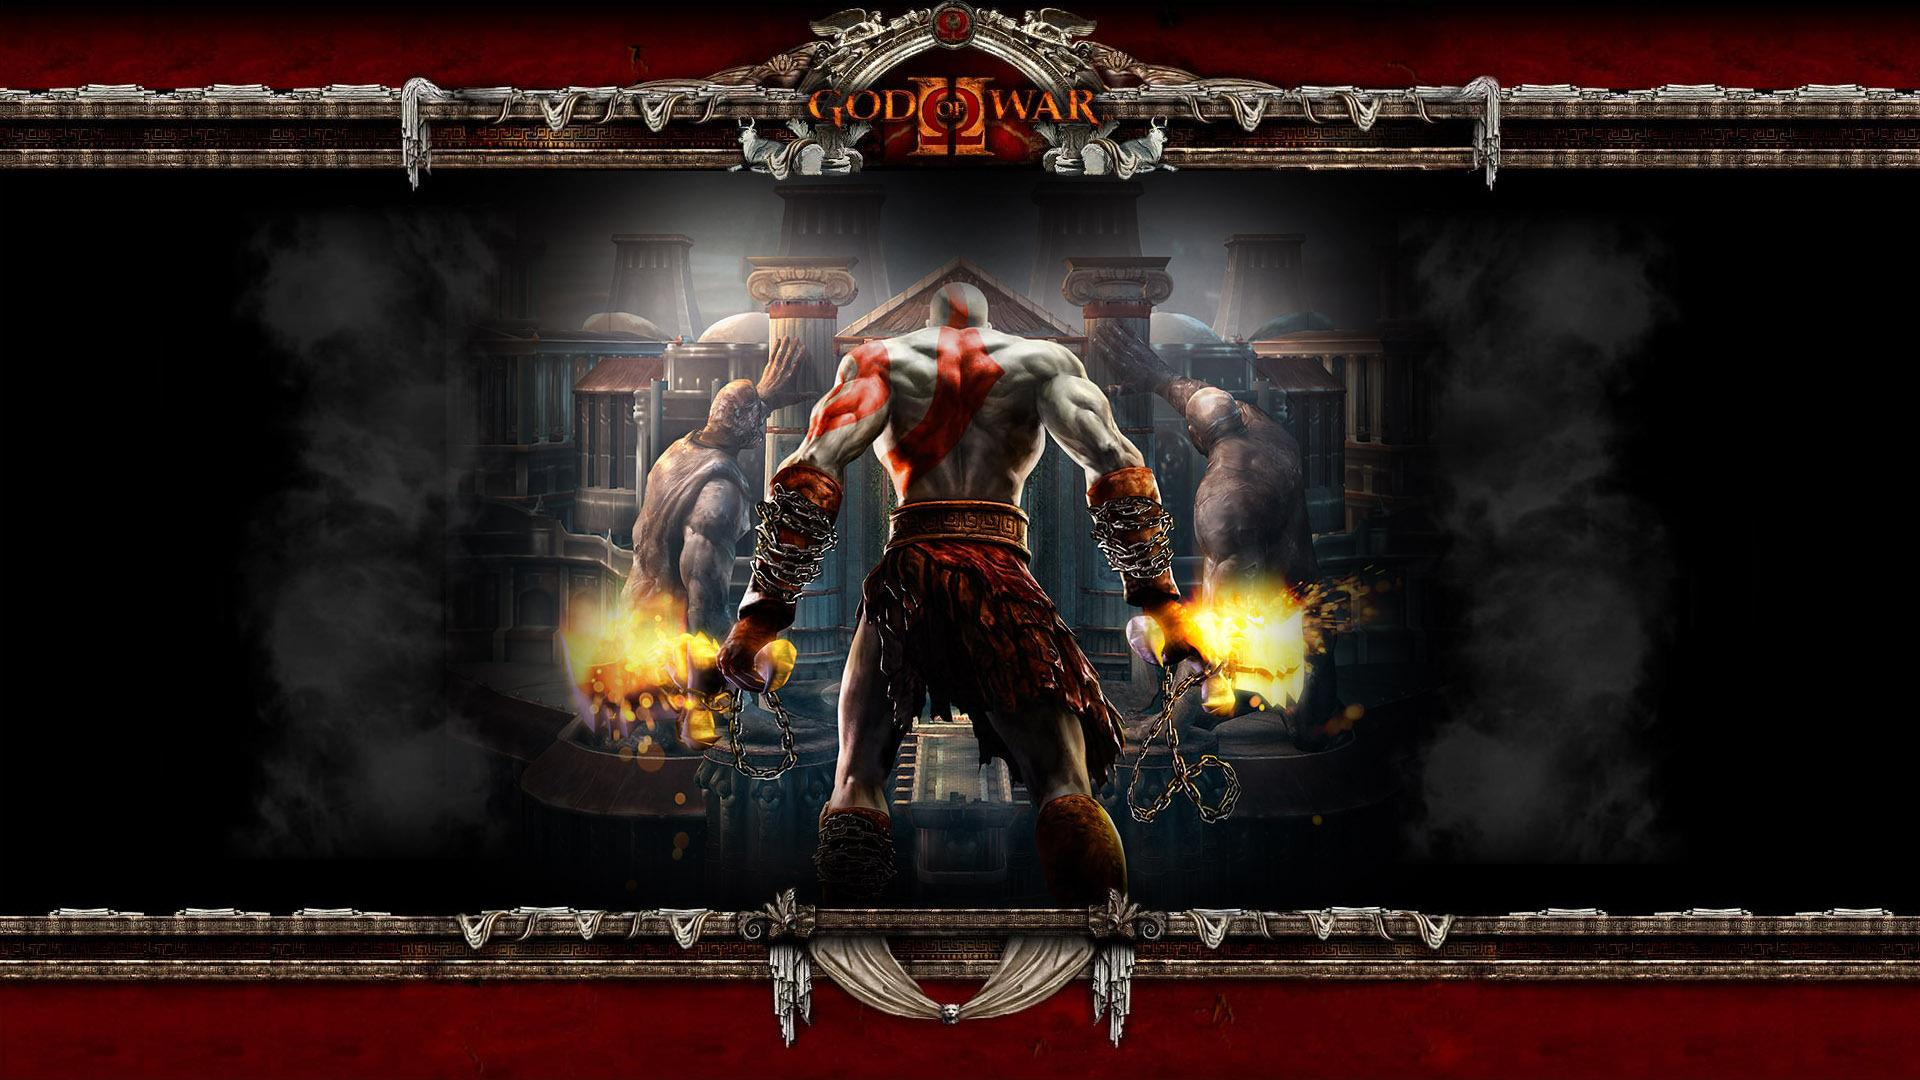 God Of War Ii Hd Wallpaper Kratos God Of War 2 272166